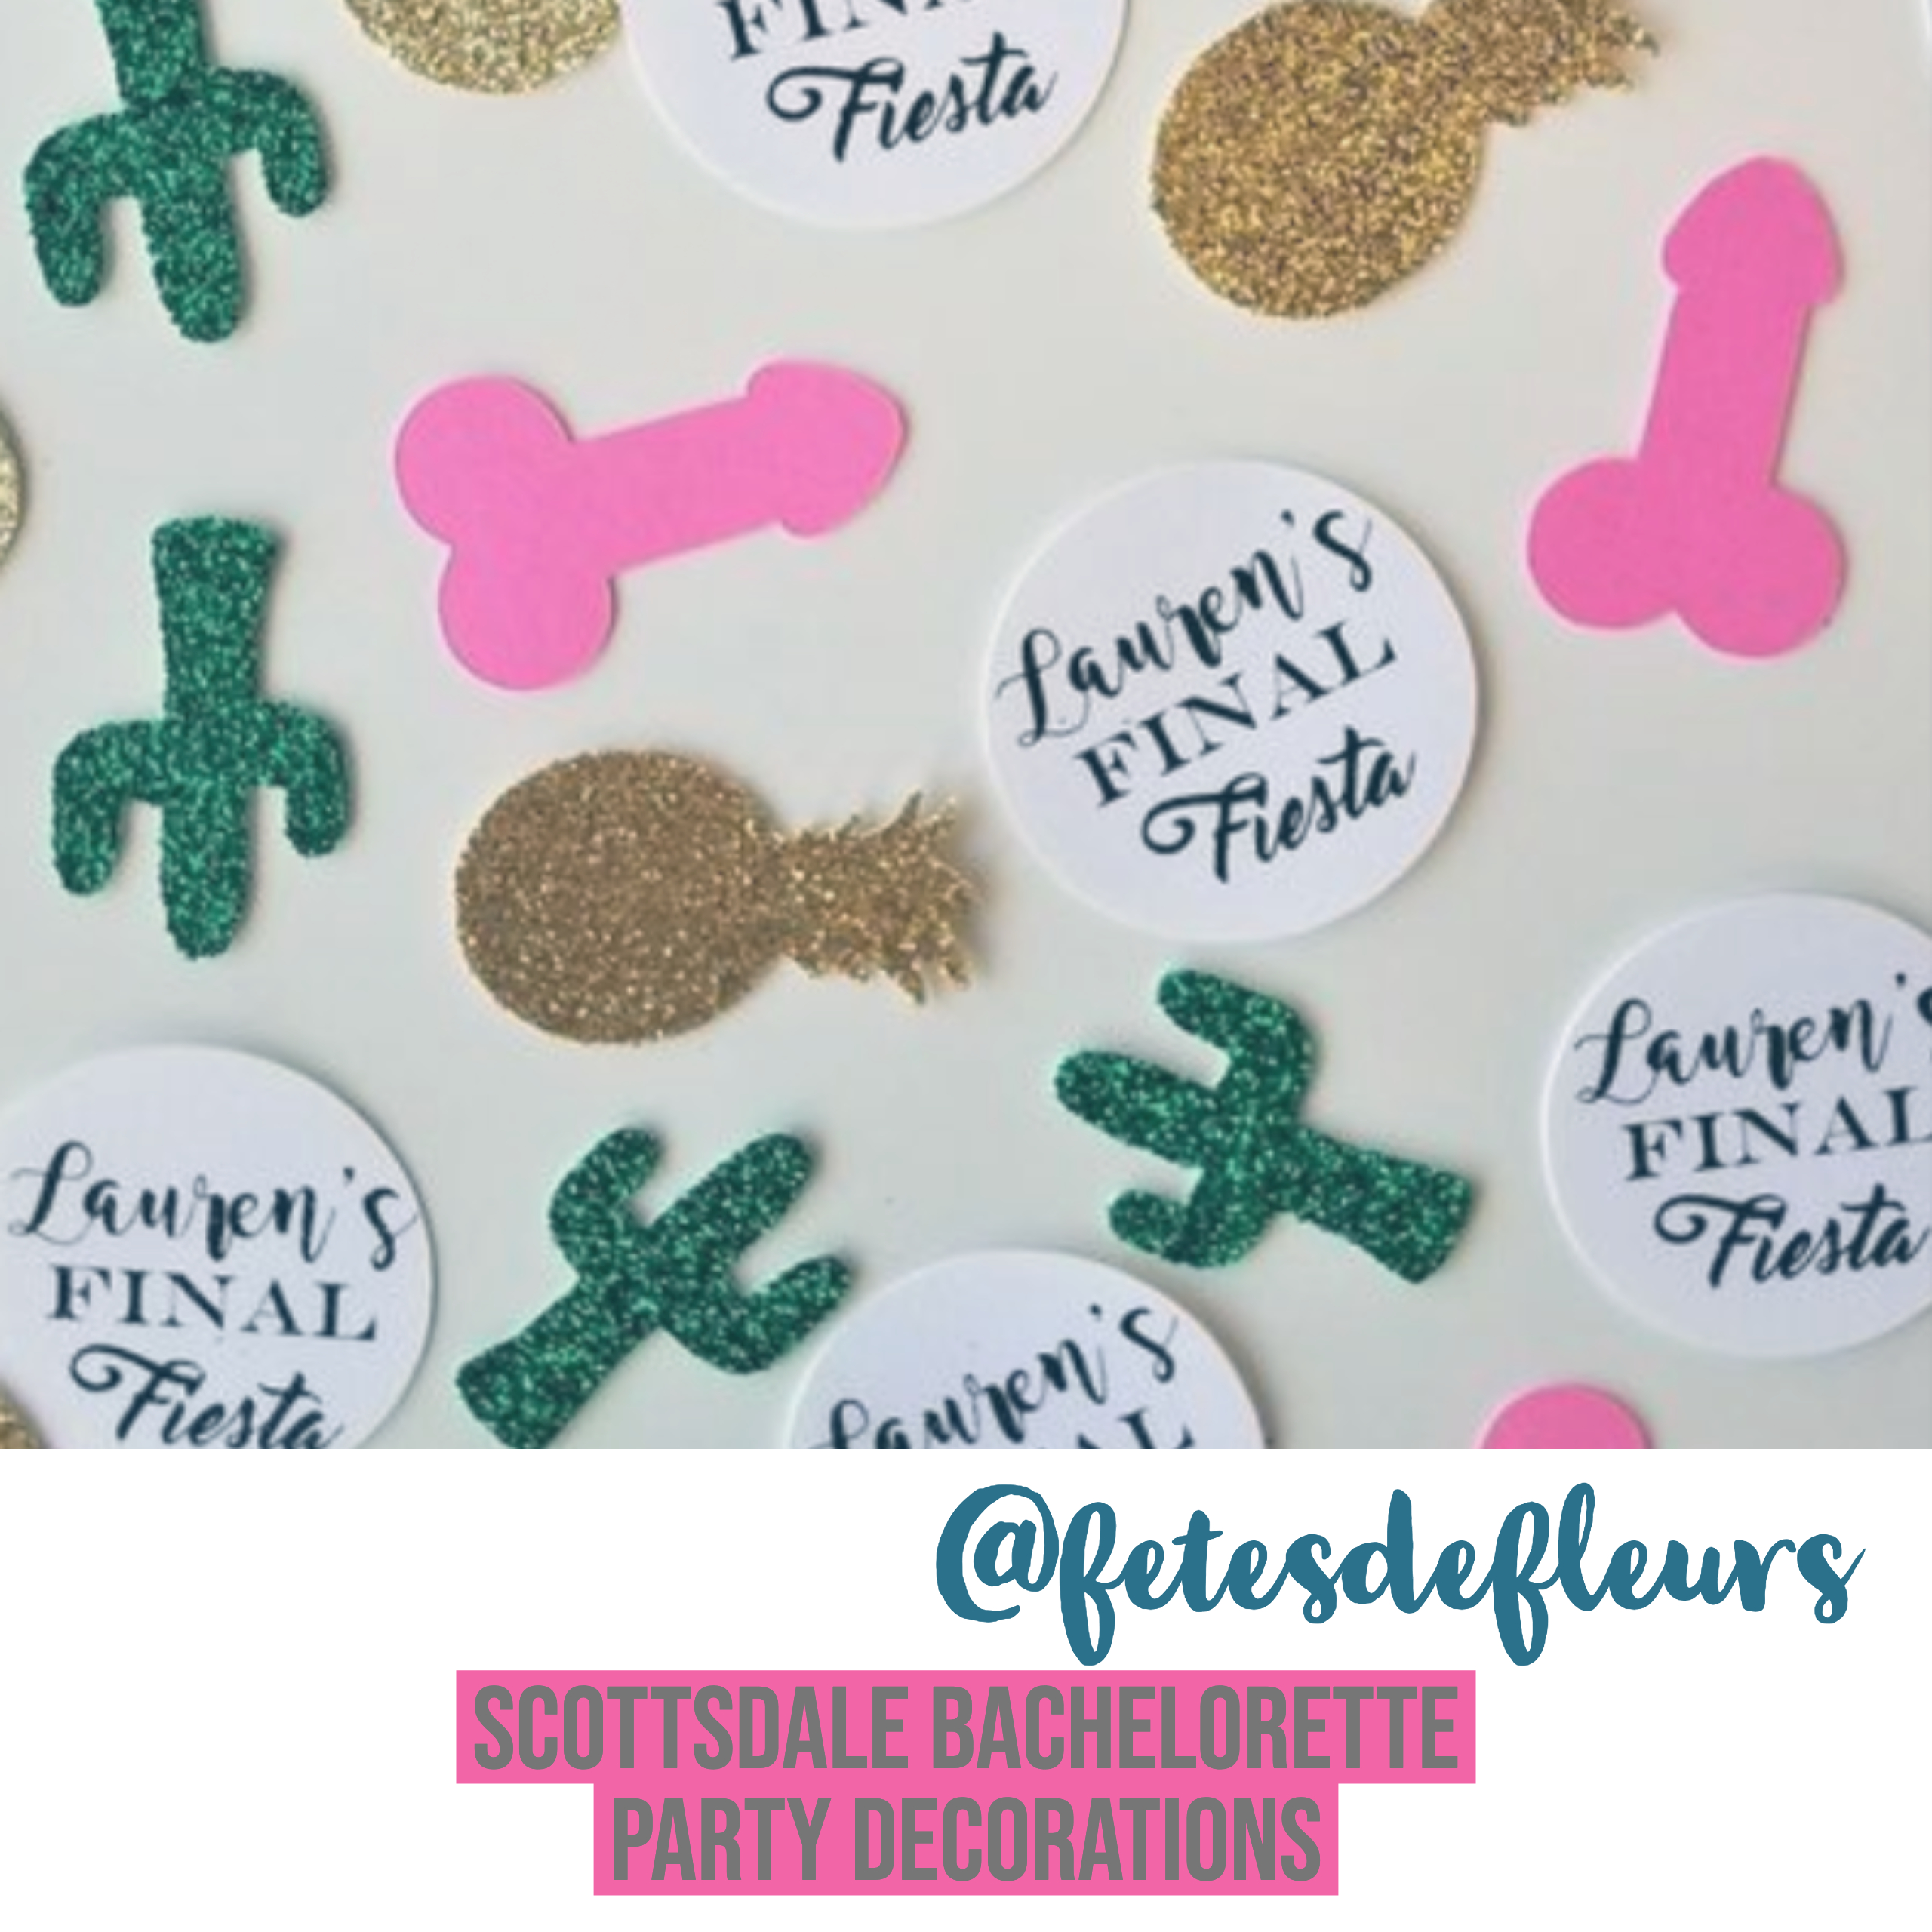 scottsdale bachelorette party decorations